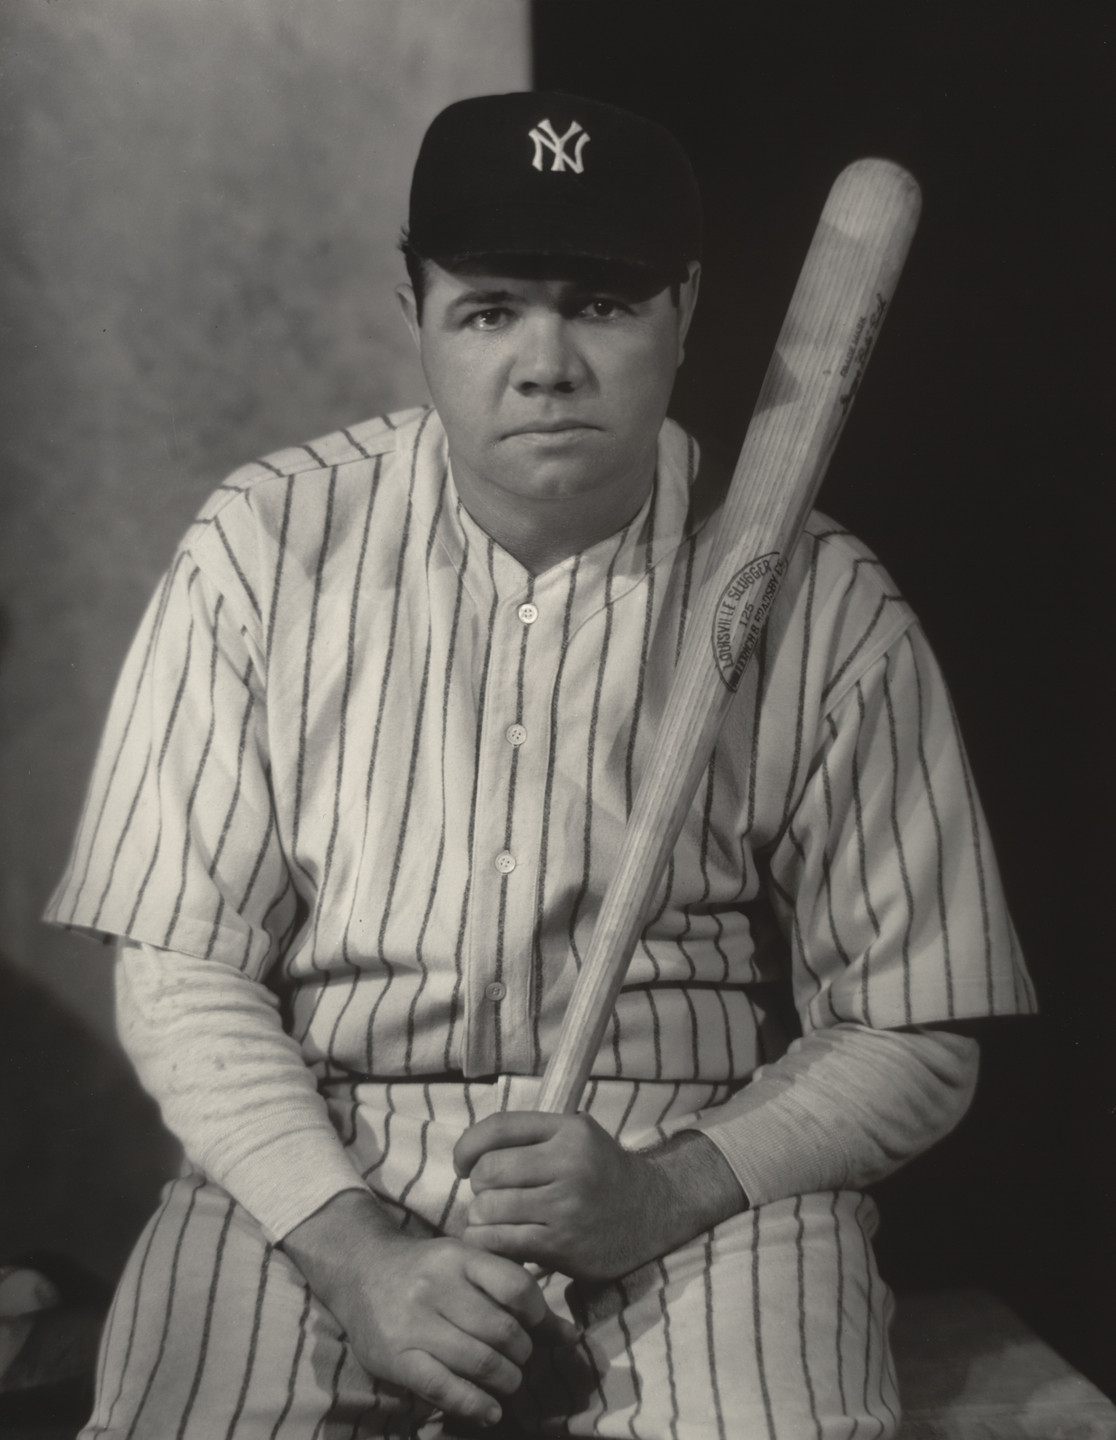 Nickolas Muray. Babe Ruth. c. 1927